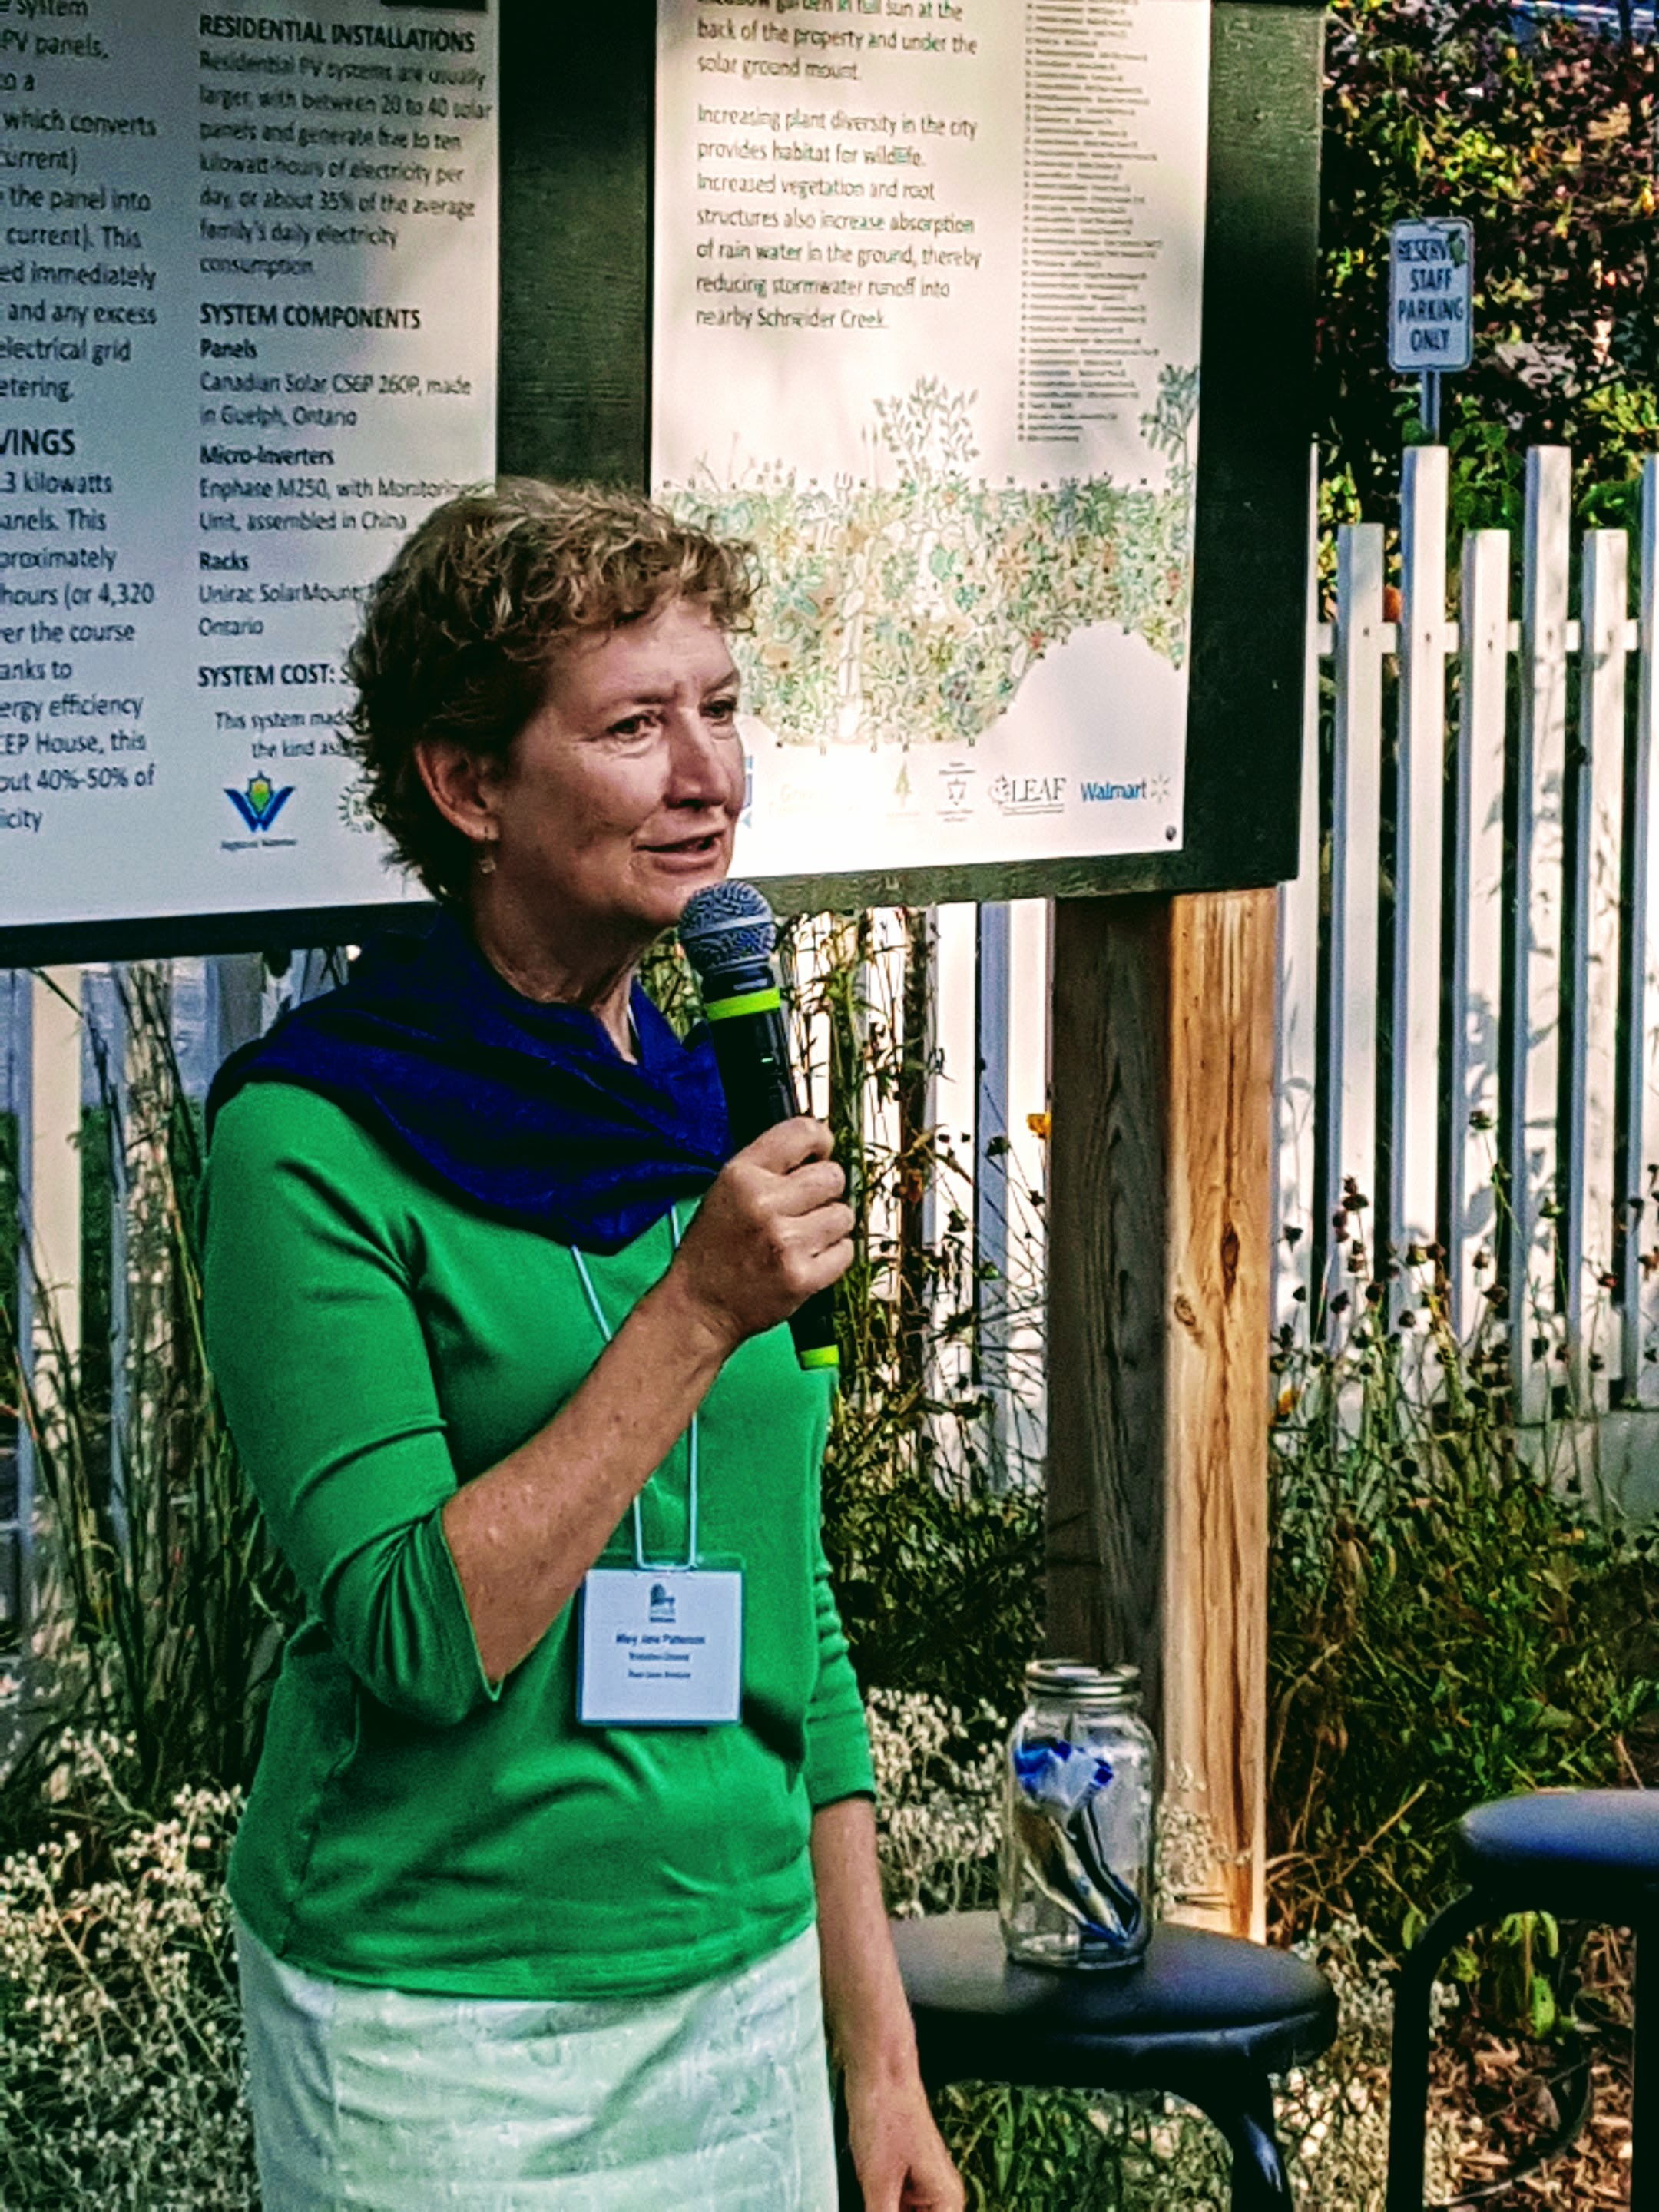 Mary Jane speaking at an event